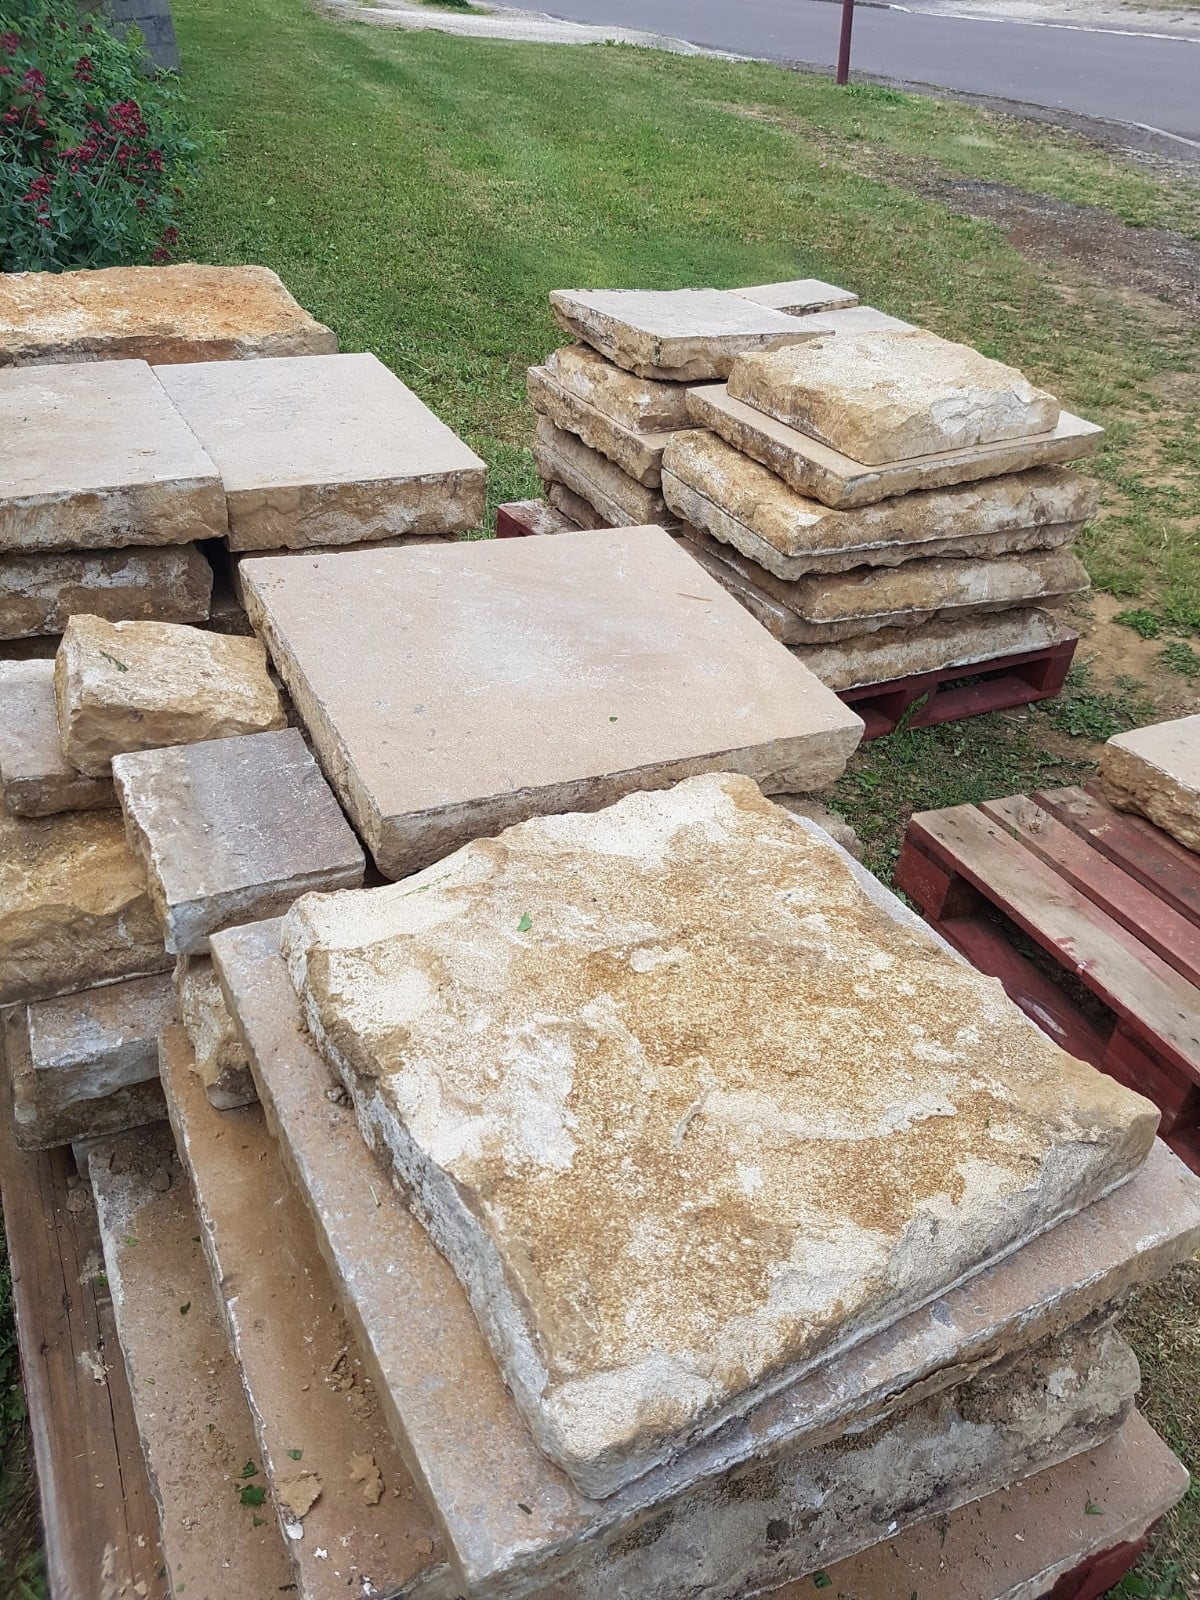 DISCOVER A SELECTION OF OLD SLABS